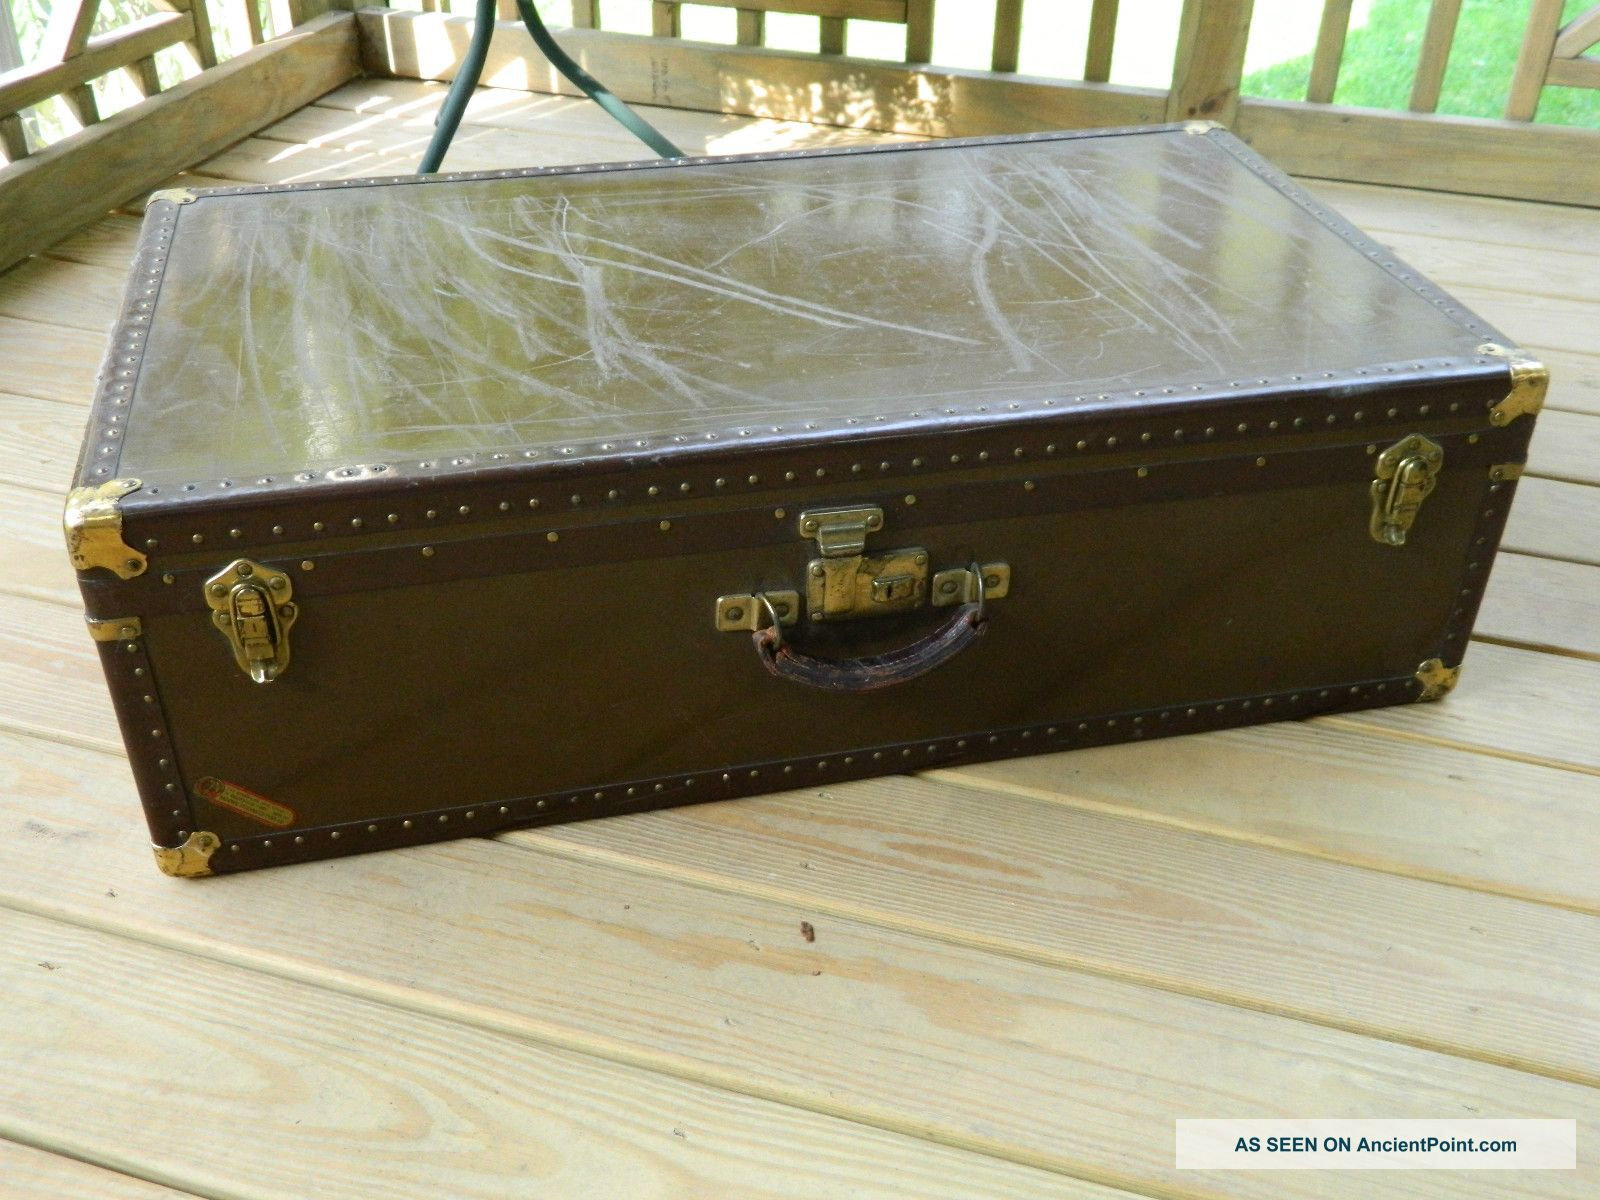 1930 - 40 ' S Steamer Trunk,  Storage Chest,  Luggage,  National Vulcanized Fibre Co. 1900-1950 photo